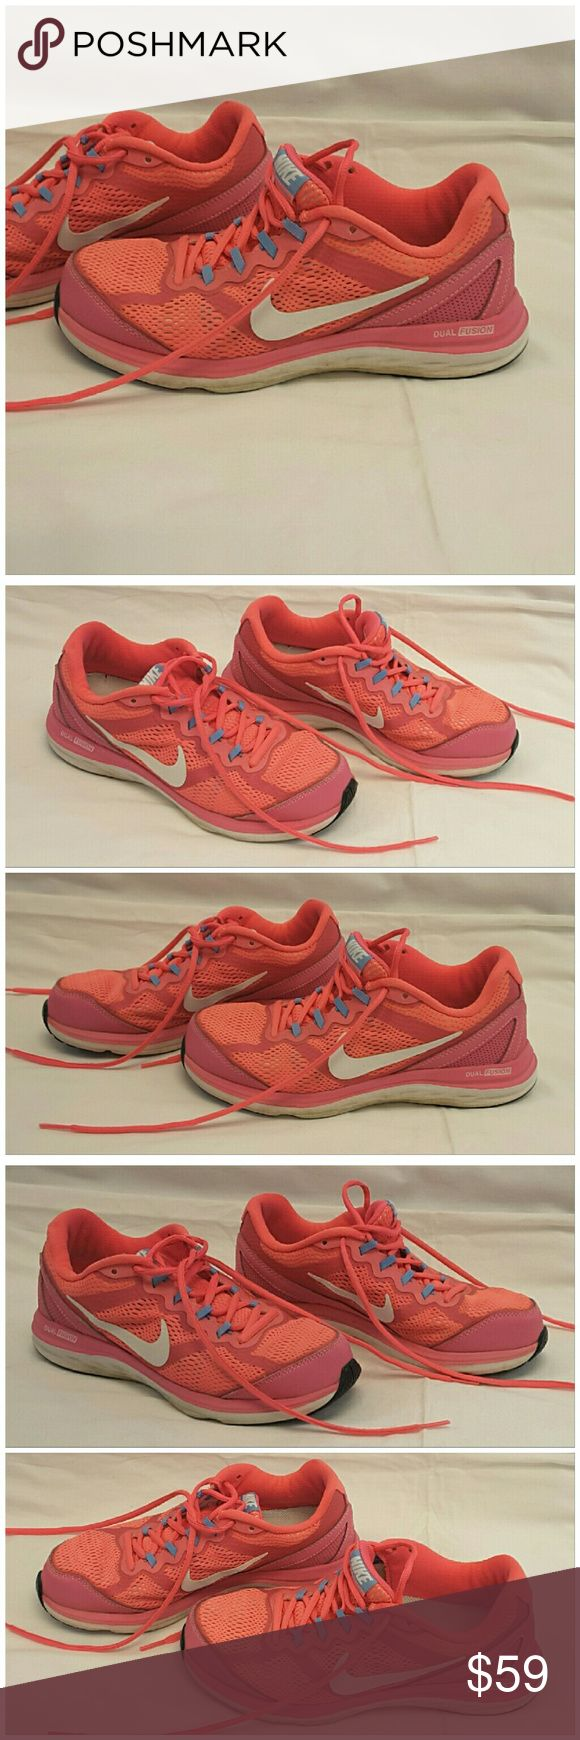 """40%BUNDLE DISCOUNT! FREE SHIPPING ON BUNDLES! NIKE DUAL FUSION, athletic shoes, size 6.5, Colorful! Shades of pinks. ADD TO A BUNDLE! 40%BUNDLE DISCOUNT! FREE SHIPPING ON BUNDLES! """"OFFER"""" $6 LESS ON BUNDLE! Price firm unless Bundled. Only accepting """"offers"""" of $6 Less on Bundles for shipping reimbursement. Nike Shoes Athletic Shoes"""